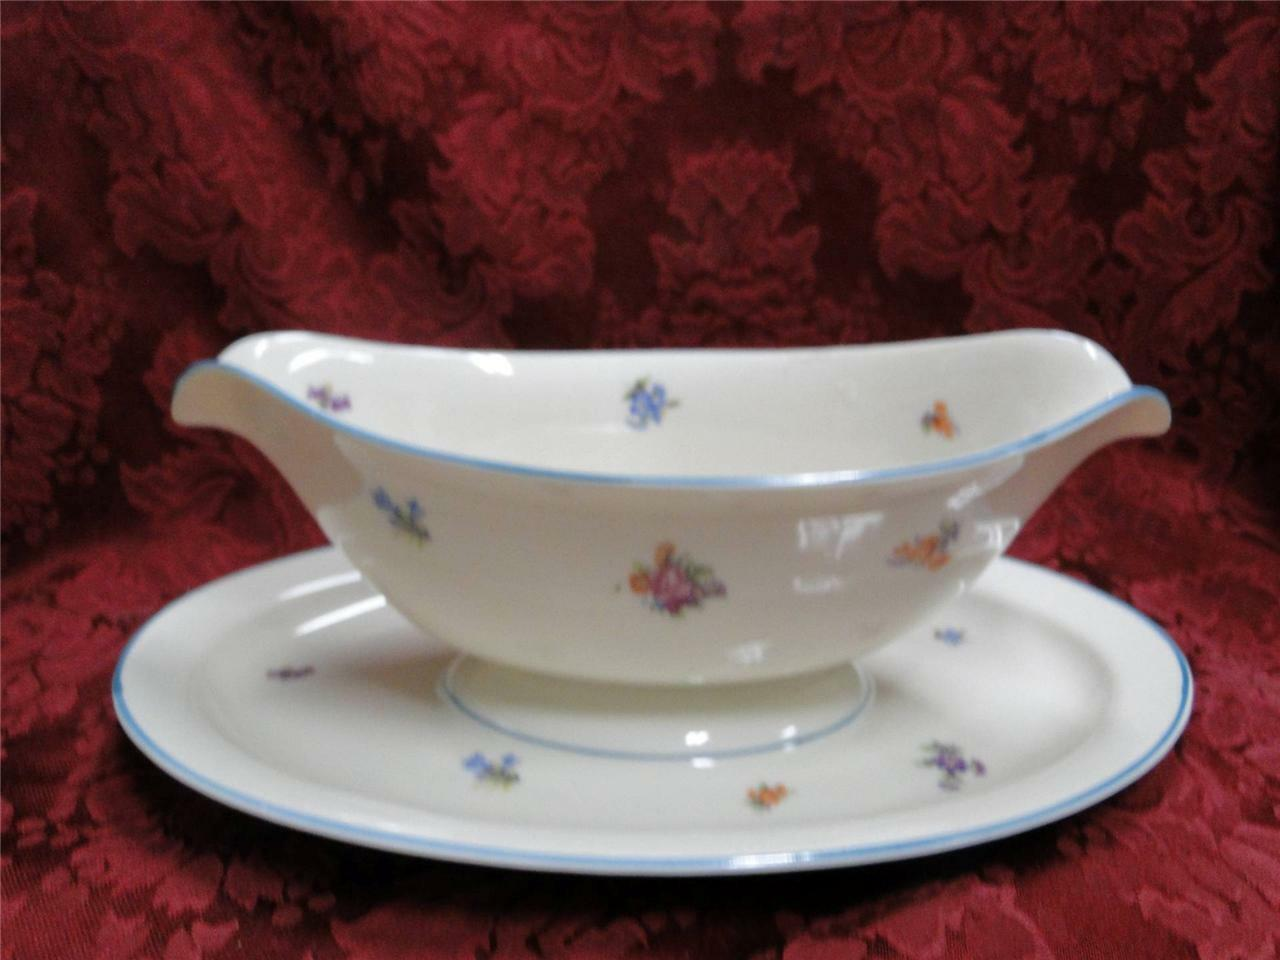 Edgerton Lorraine E220 floral, turquoise trim: Gravy with Attached Underplate